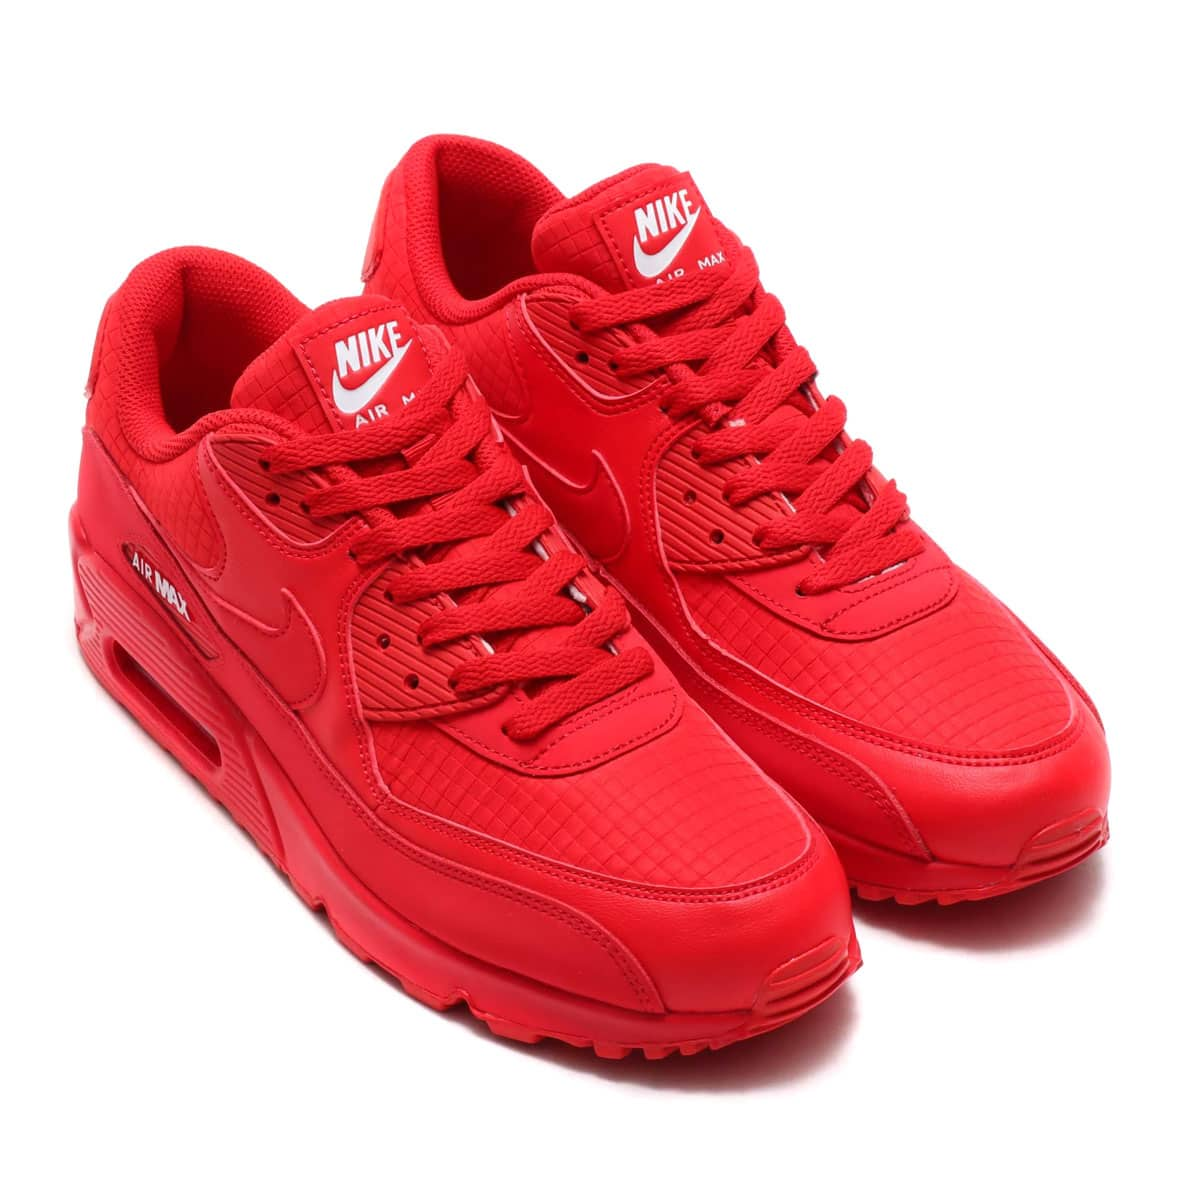 NIKE AIR MAX 90 ESSENTIAL UNIVERSITY REDWHITE 19SU I